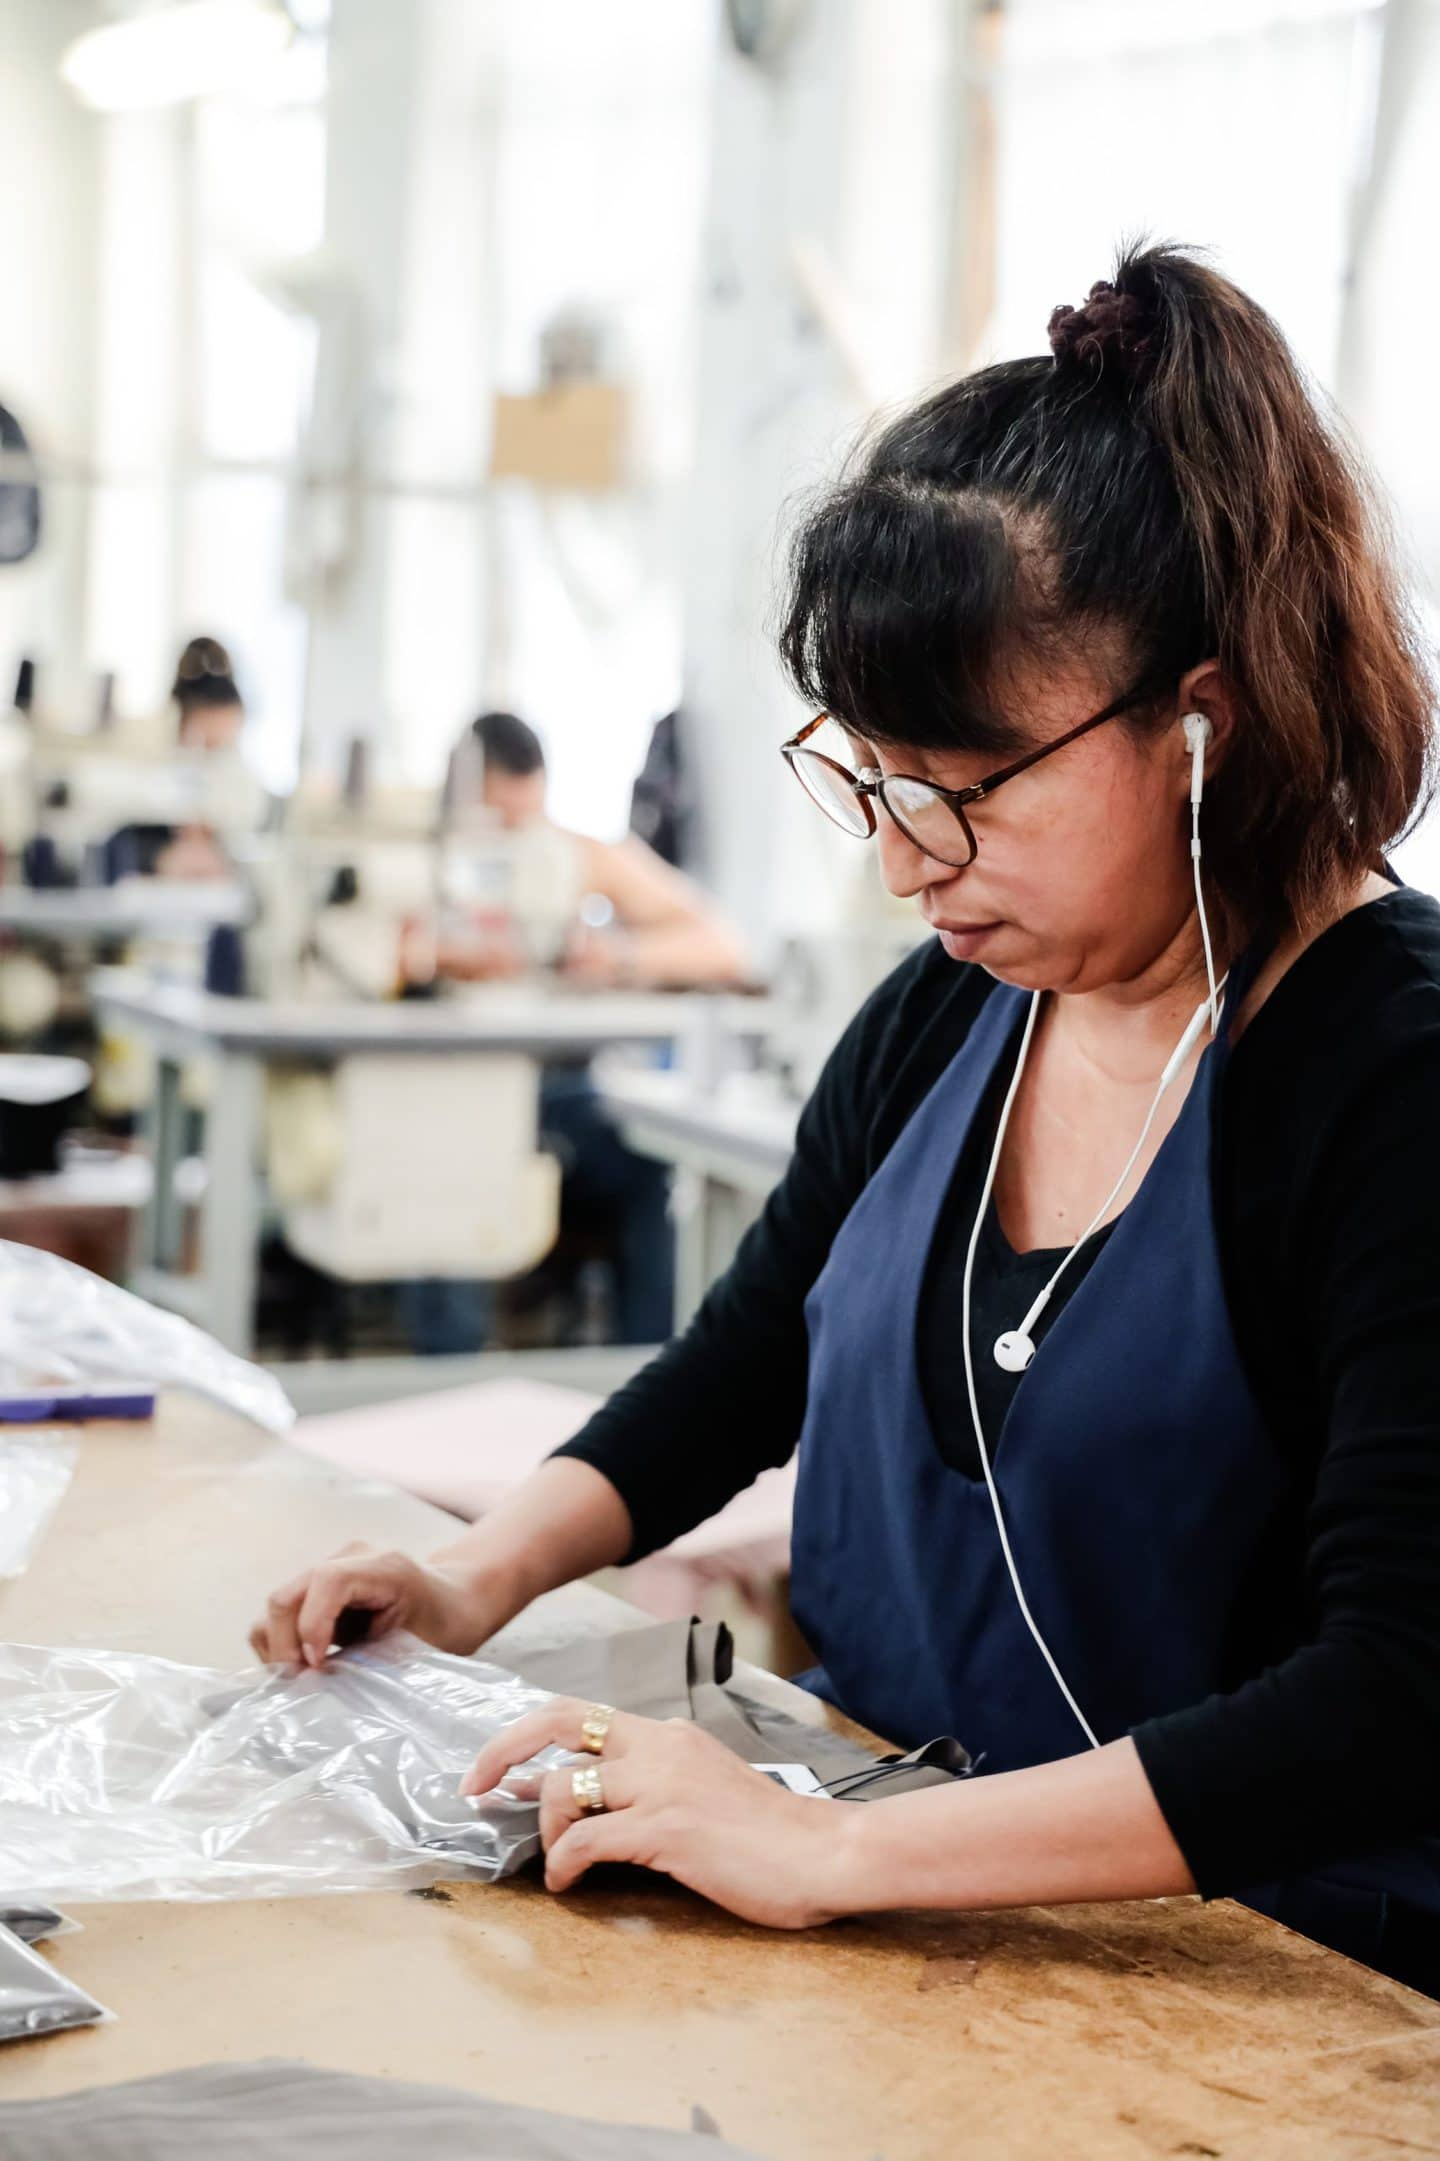 A Los Angeles seamstresses working on wrapping up sustainable fashion items